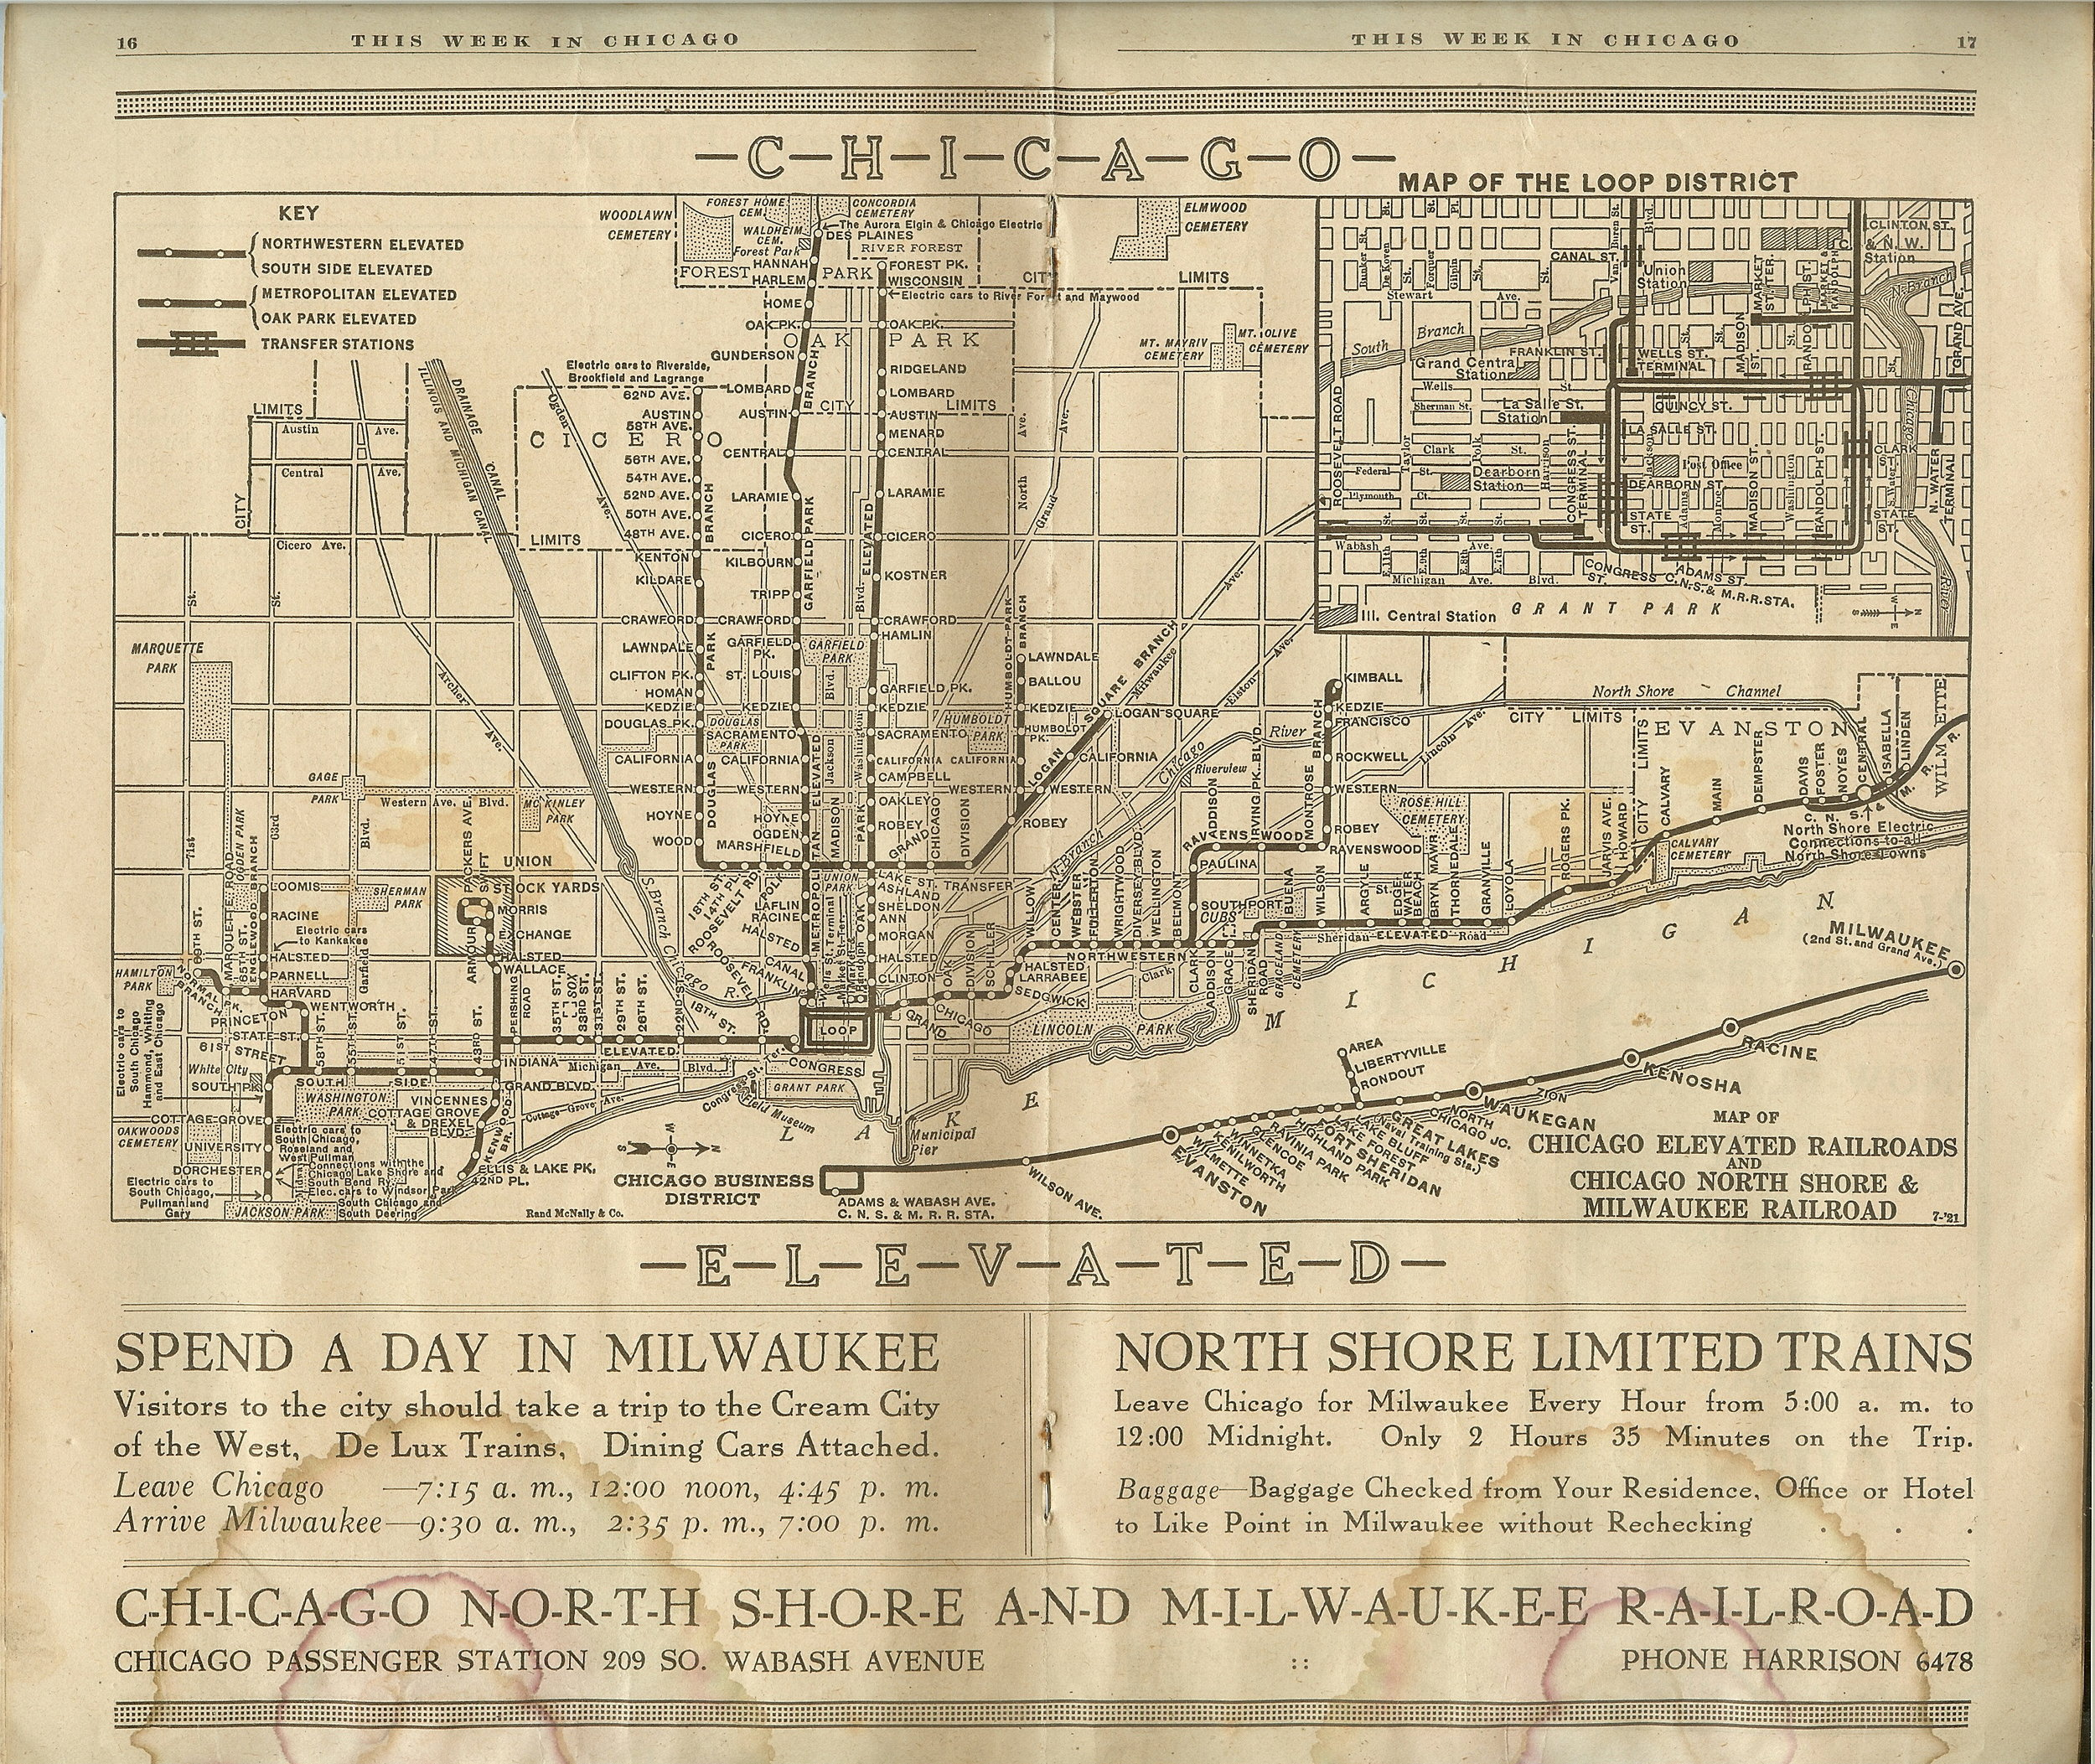 1921_Chicago_L_map.jpg